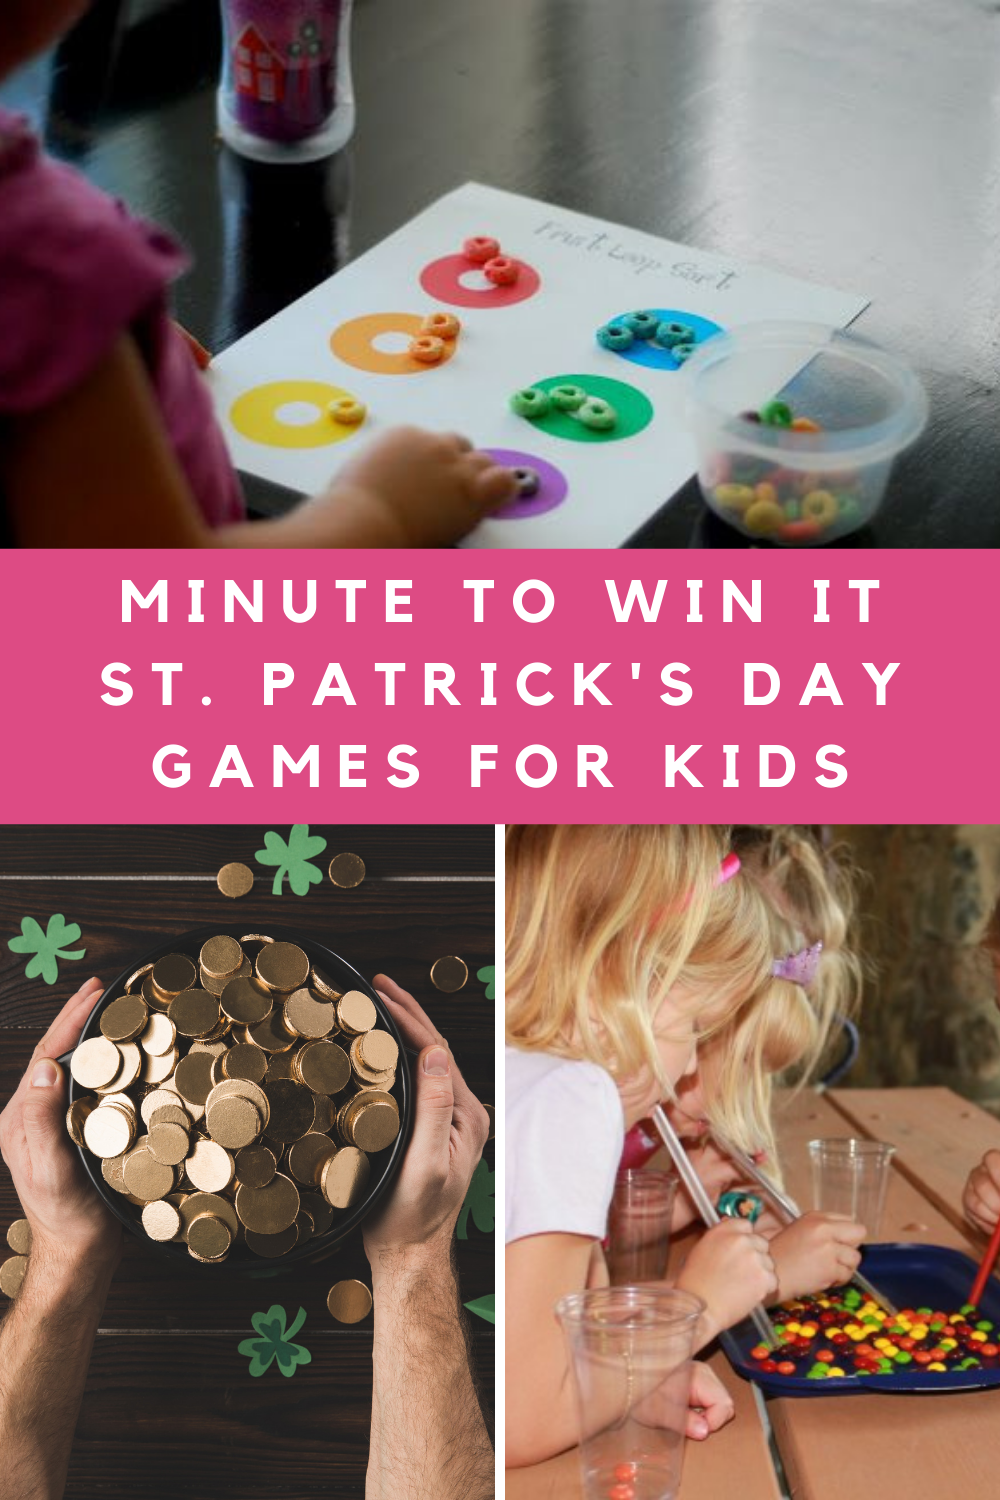 One Minute St. Patricks Day Games for Kids to win it